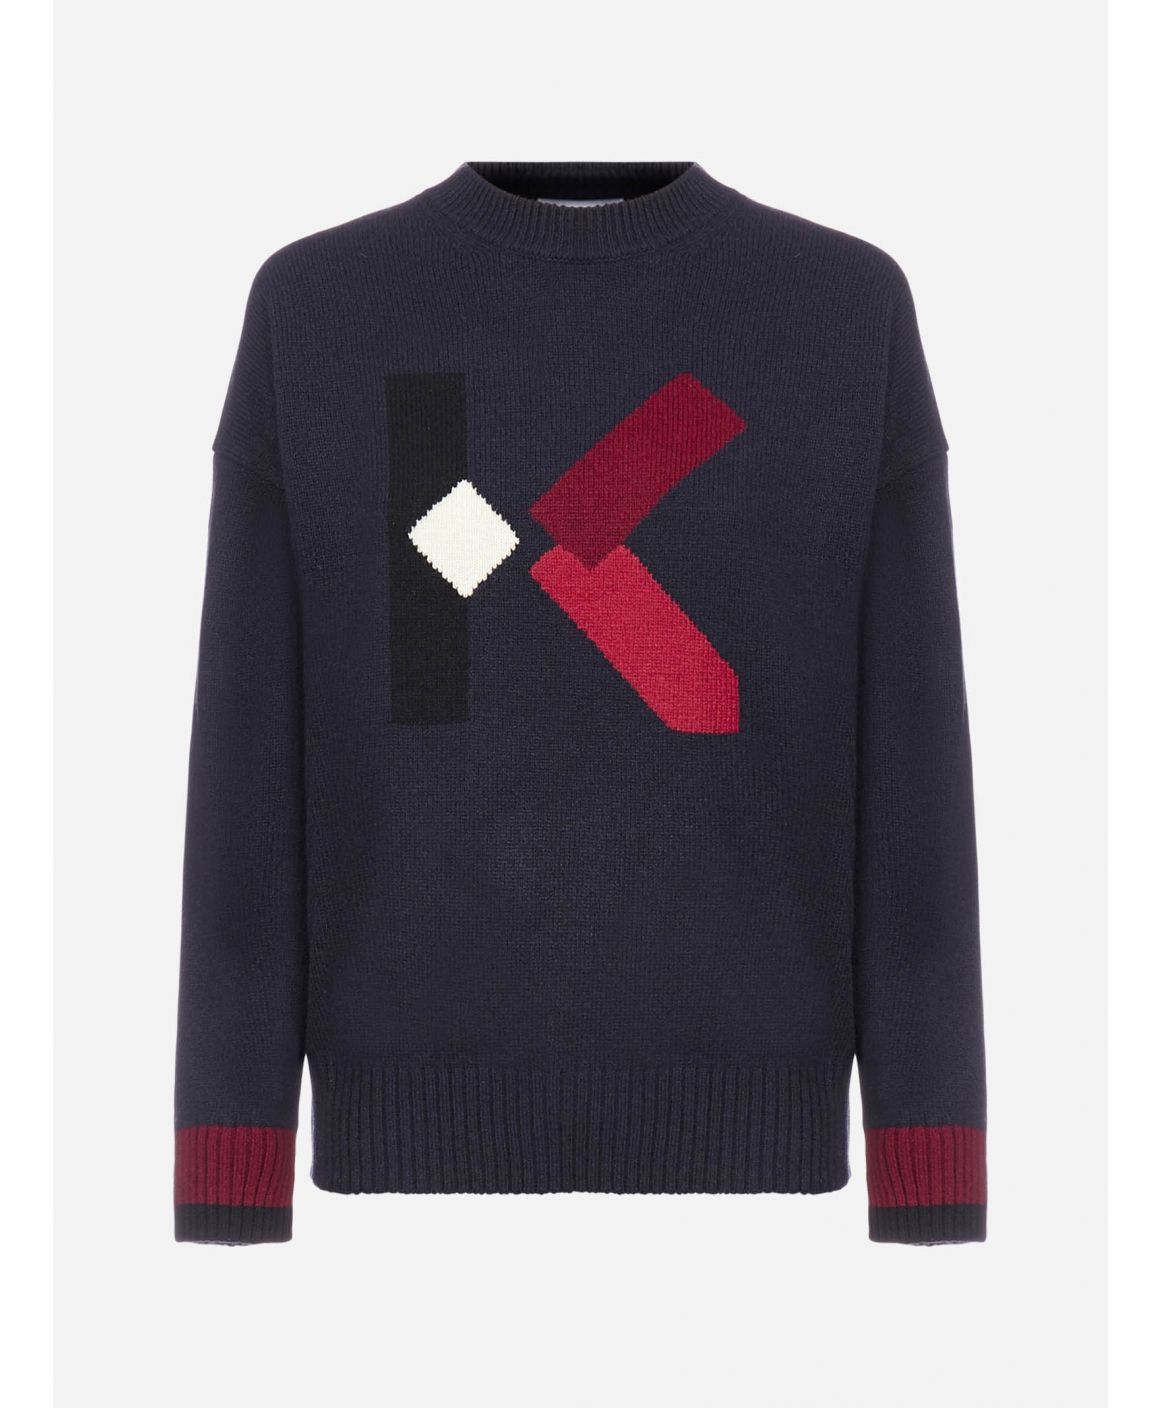 K-monogram wool sweater